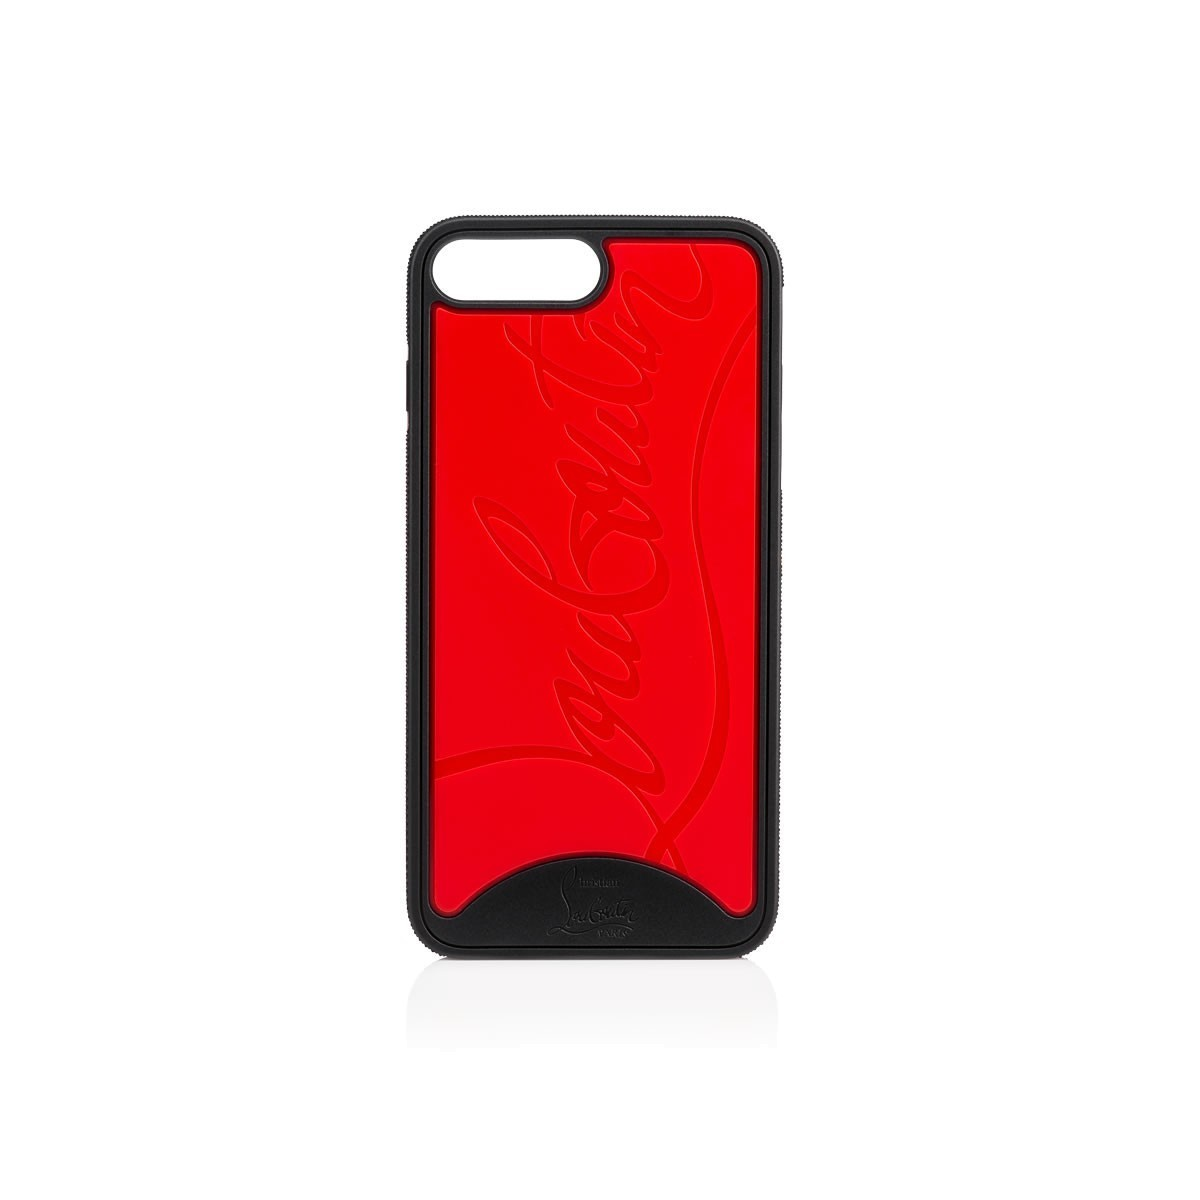 Loubiphone Case Iphone 7/8 Plus